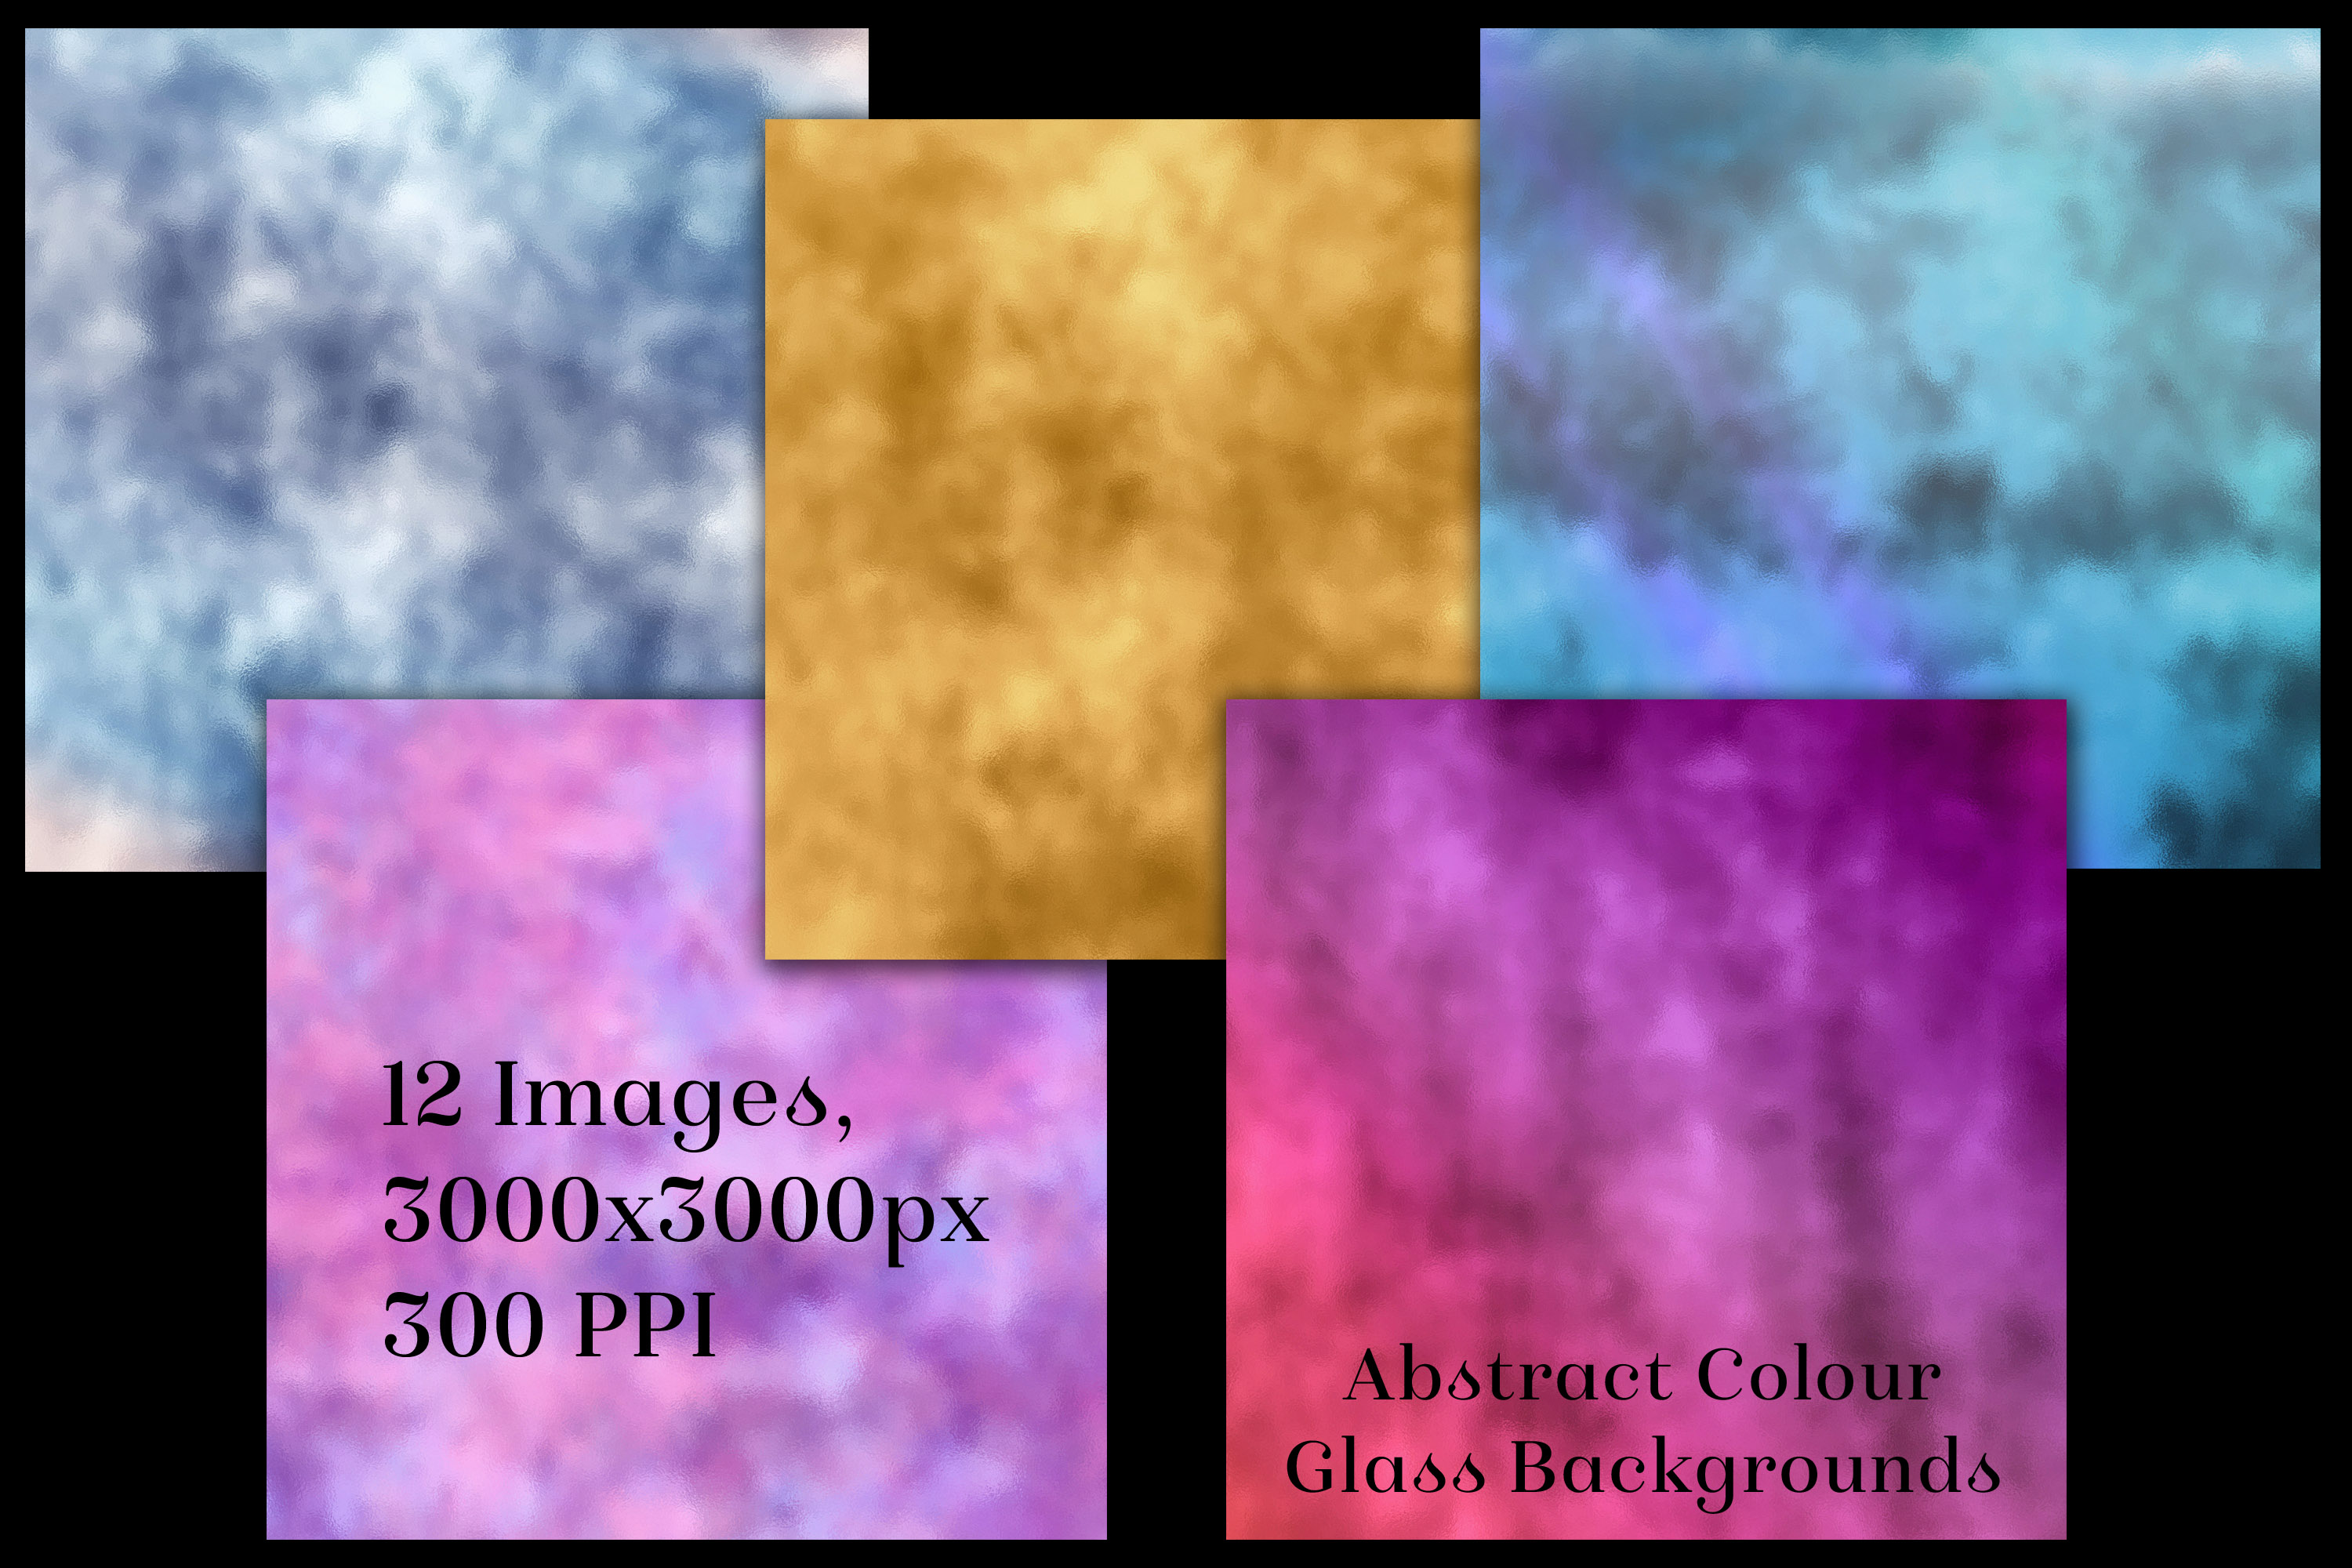 Abstract Colour Glass Backgrounds - 12 Image Textures Set example image 2